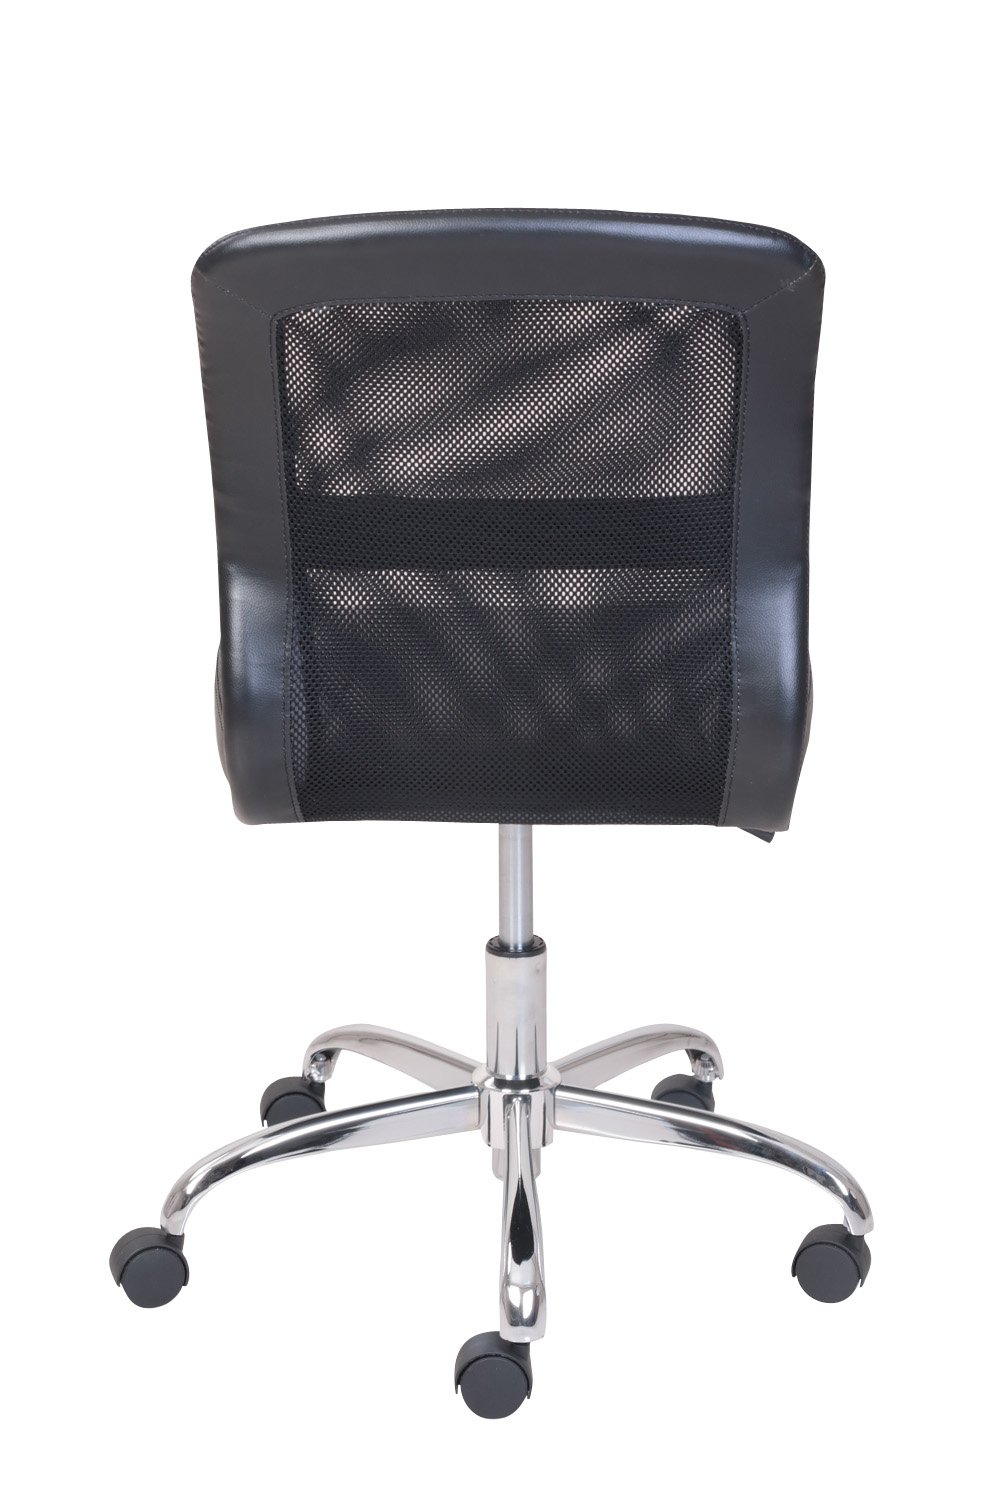 Comfortable Vinyl and Mesh Task Chair with Durable Metal Base, One-Touch Pneumatic Height Adjustment, Padded Seat and Back for Comfort + Expert Home Guide by Love US by LOVE US (Image #2)